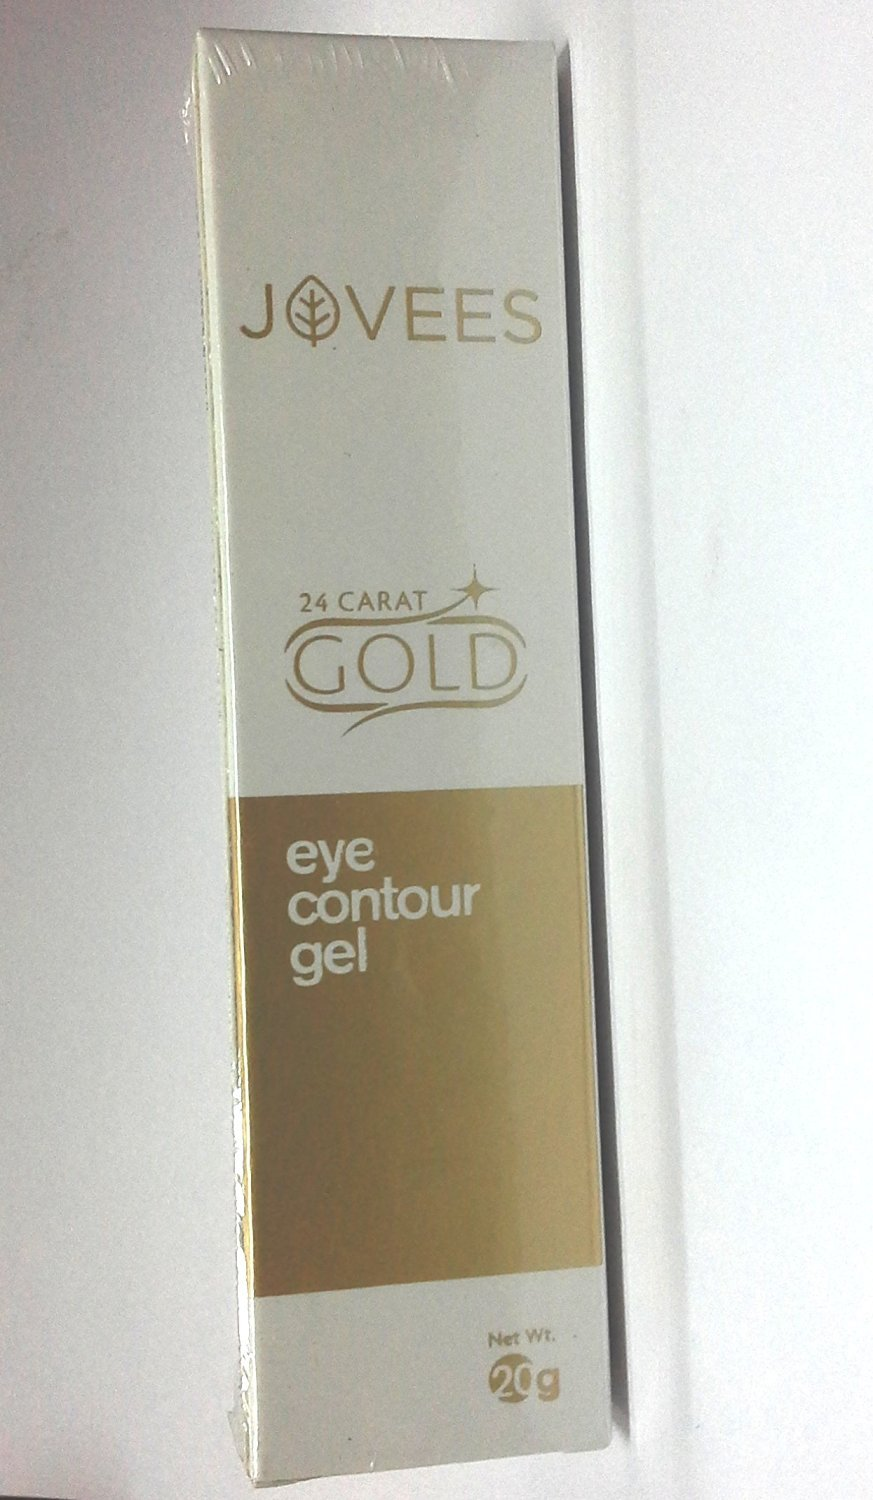 Jovees 24 Carat Gold Eye Contour Gel 20g